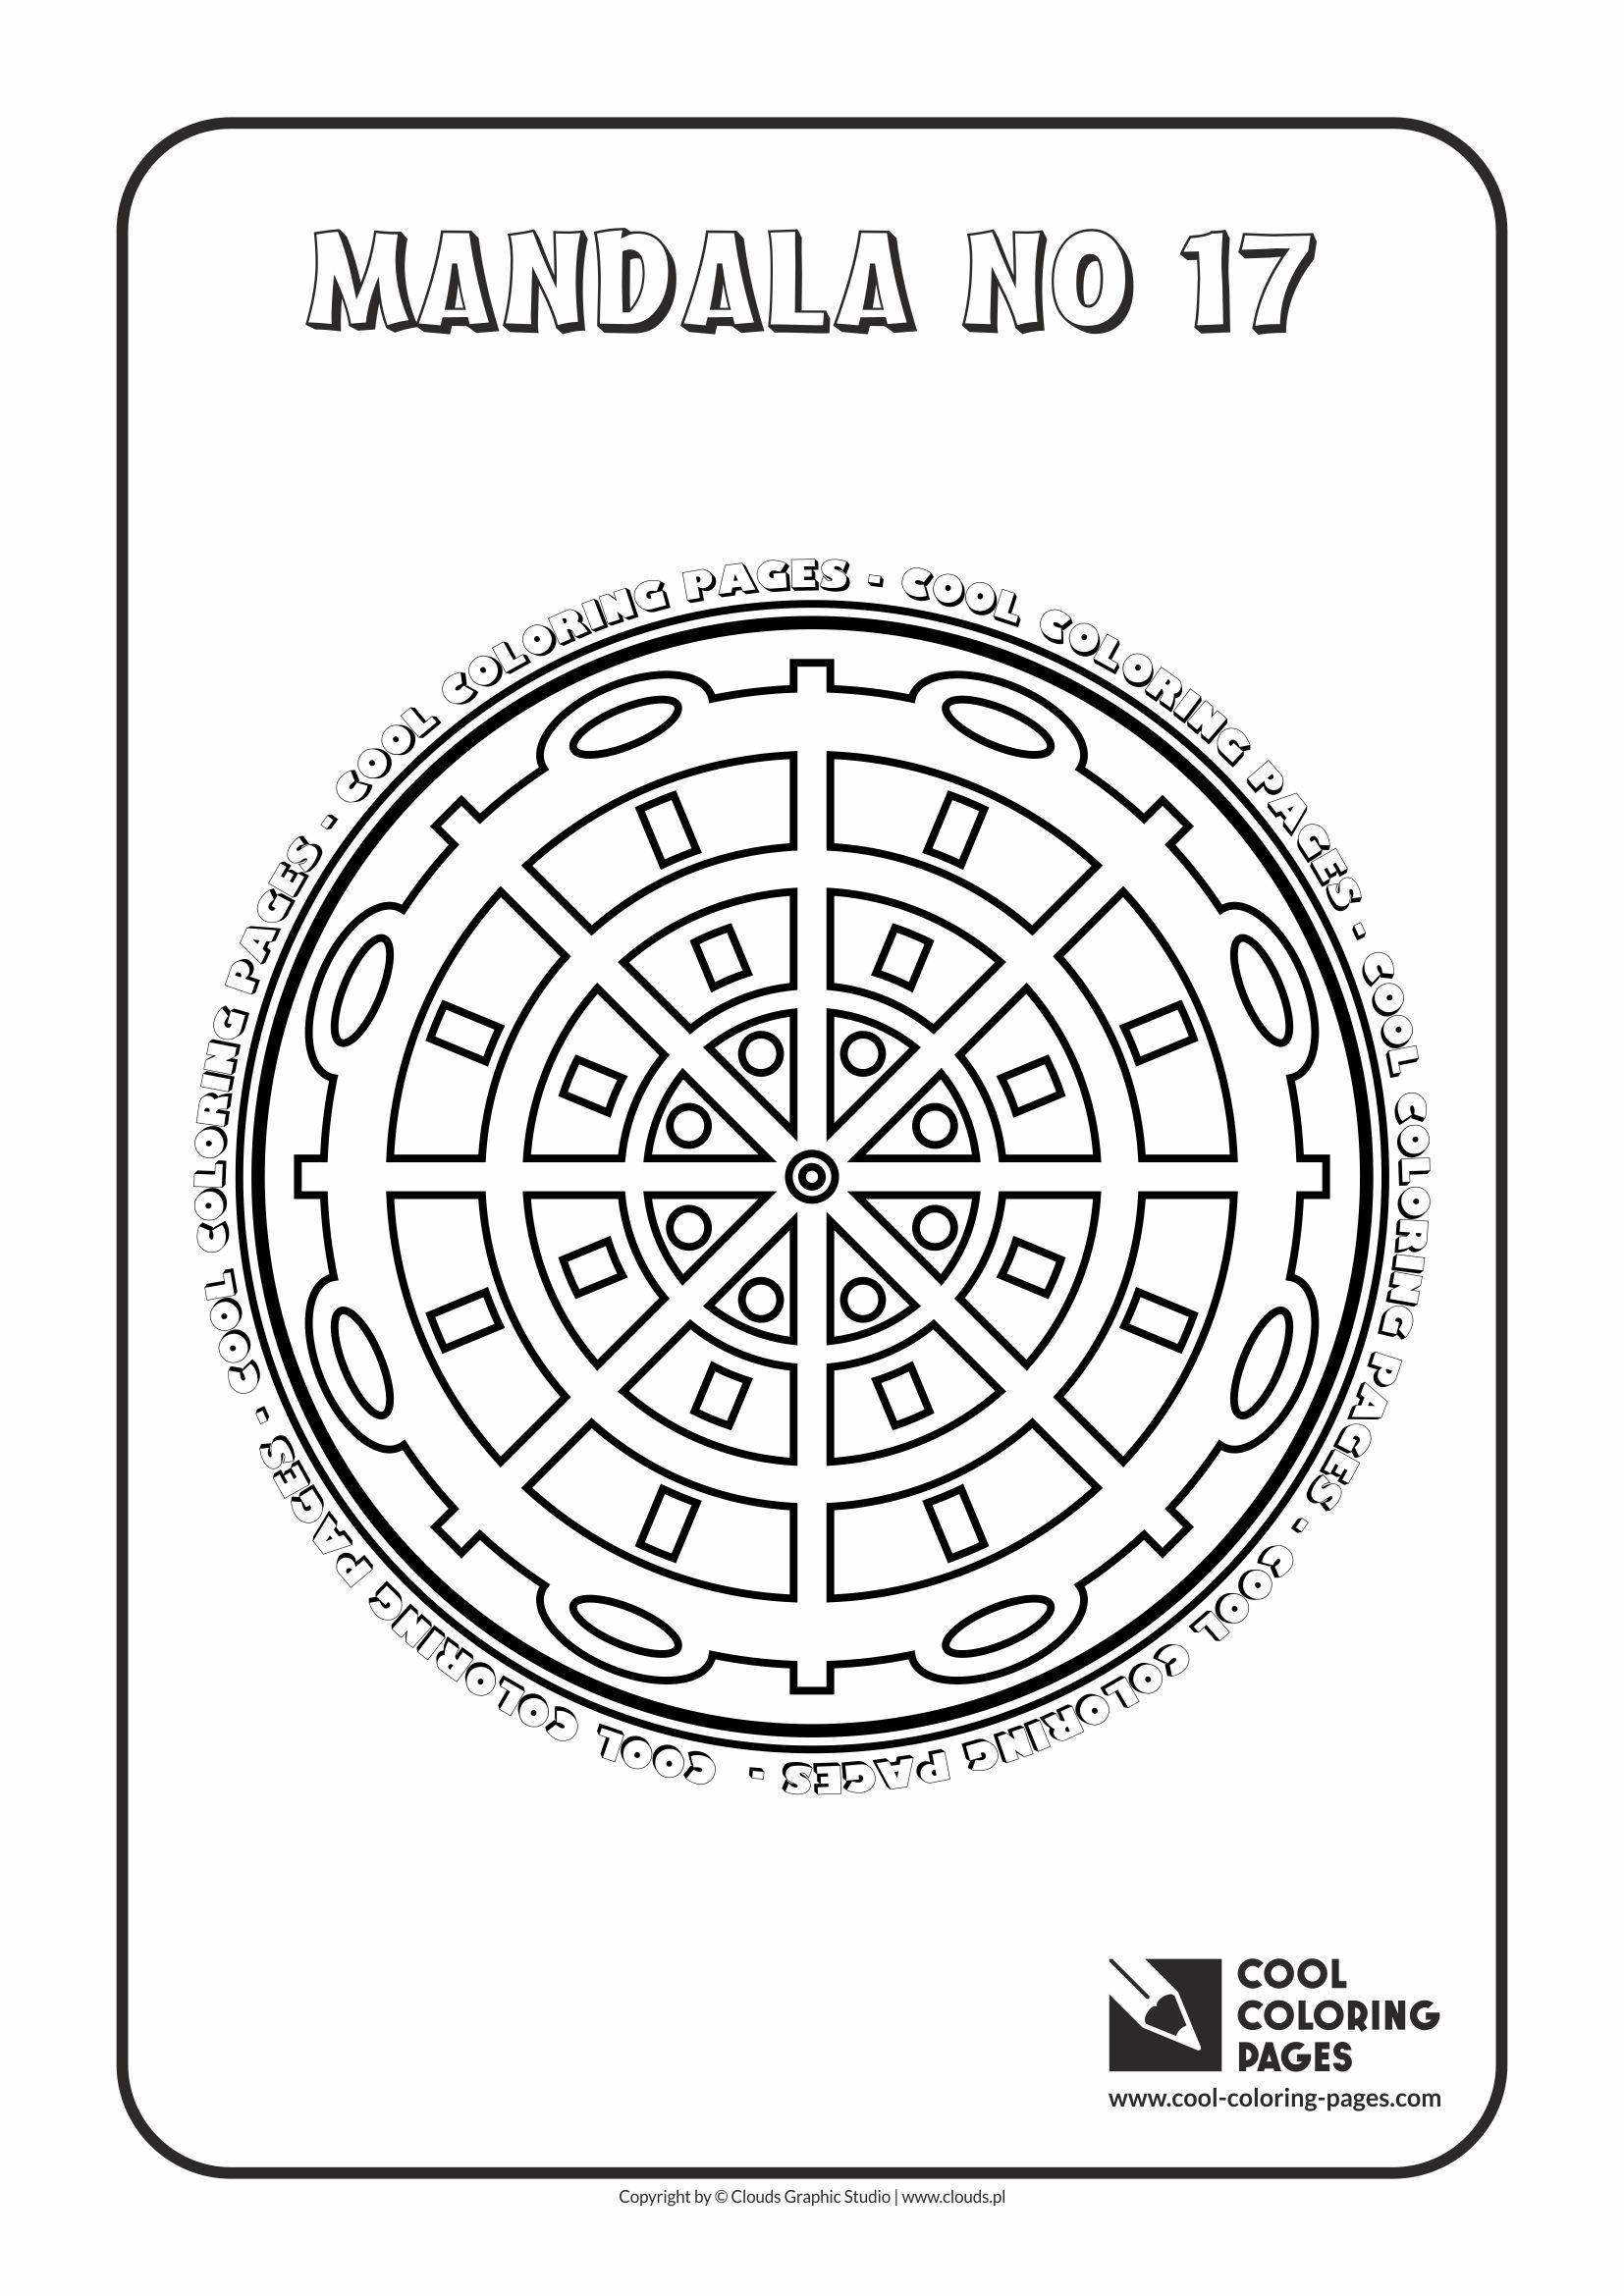 Cool Coloring Pages - Mandalas / Mandala no 17